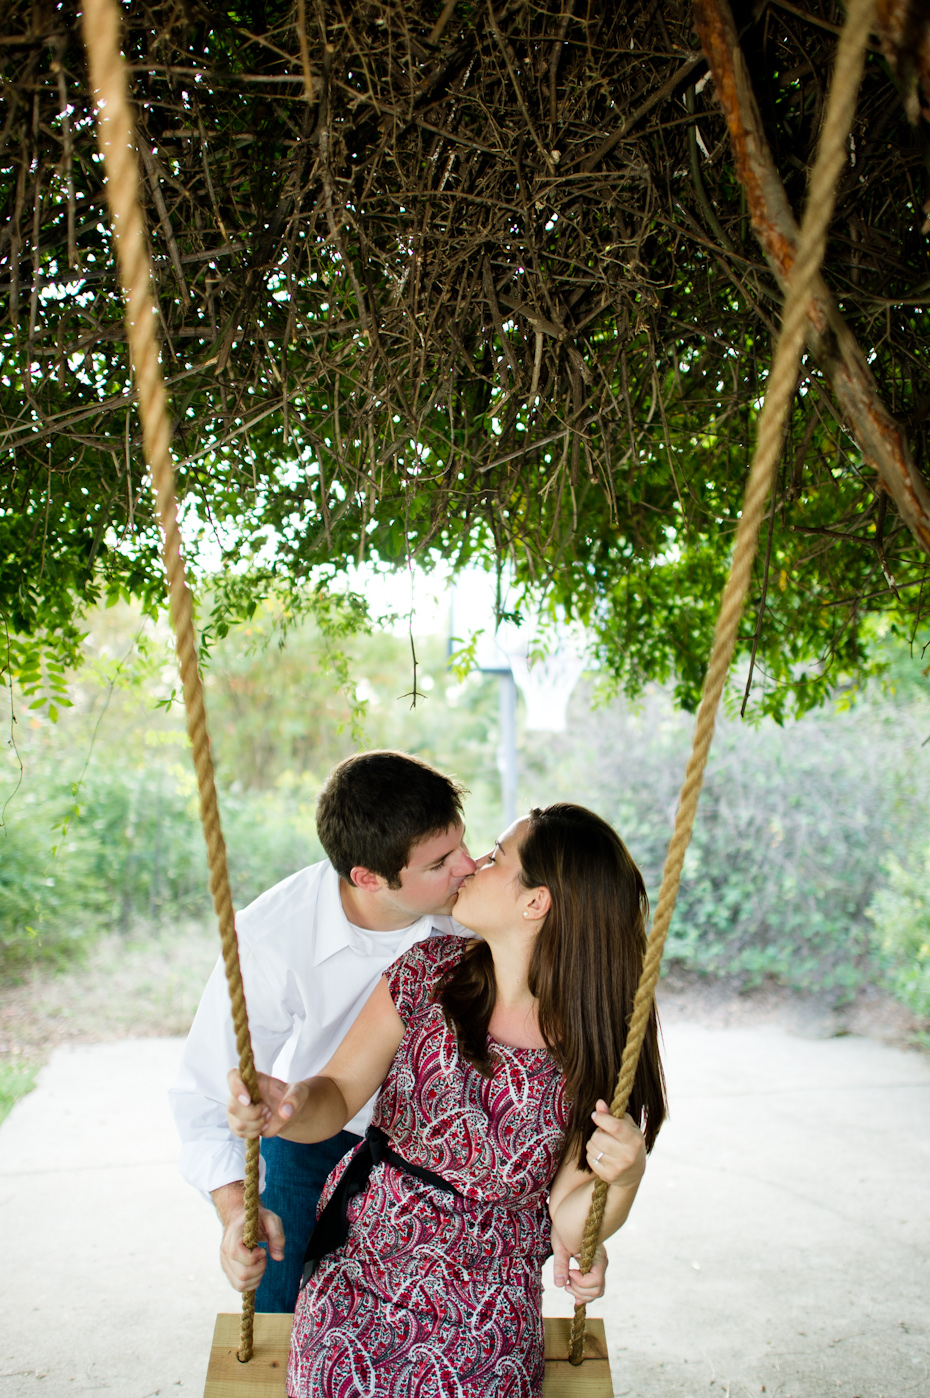 Engagement pictures on a swing